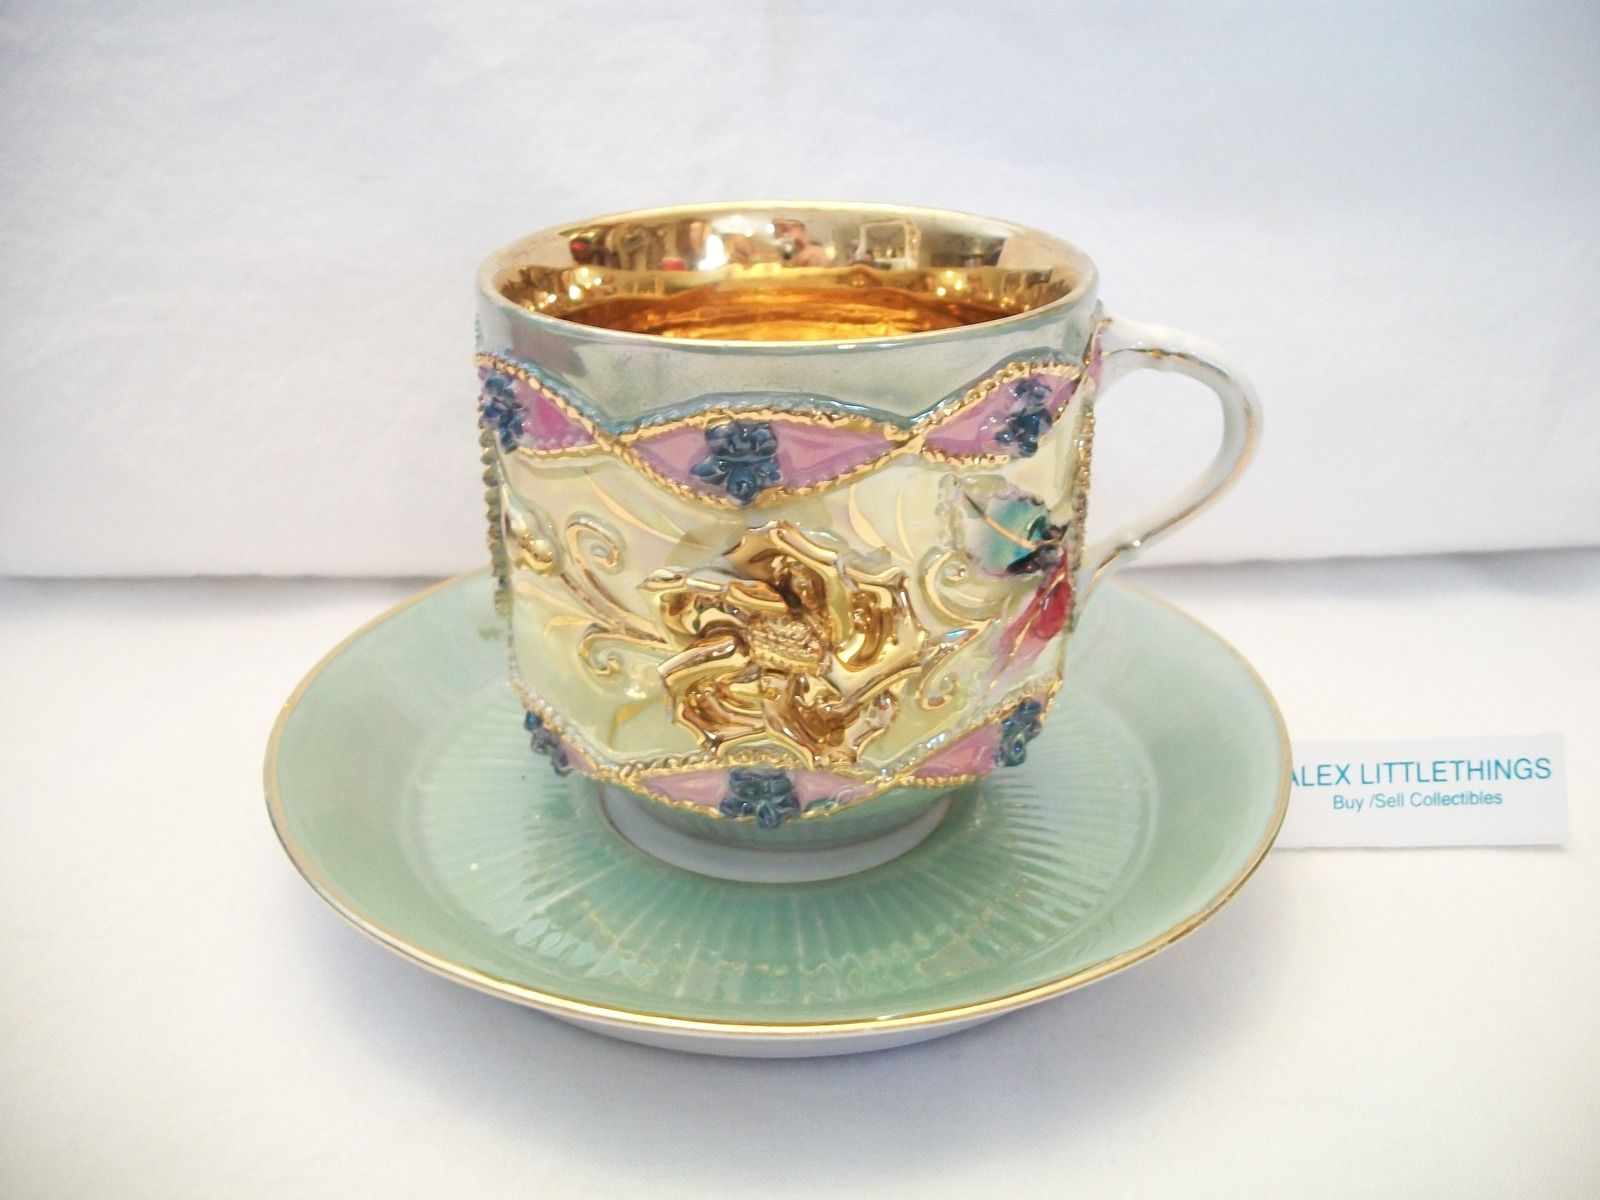 Fancy Cappuccino Cups Rare Vintage Decorative Coffee Tea Mug Cup Made In Germany